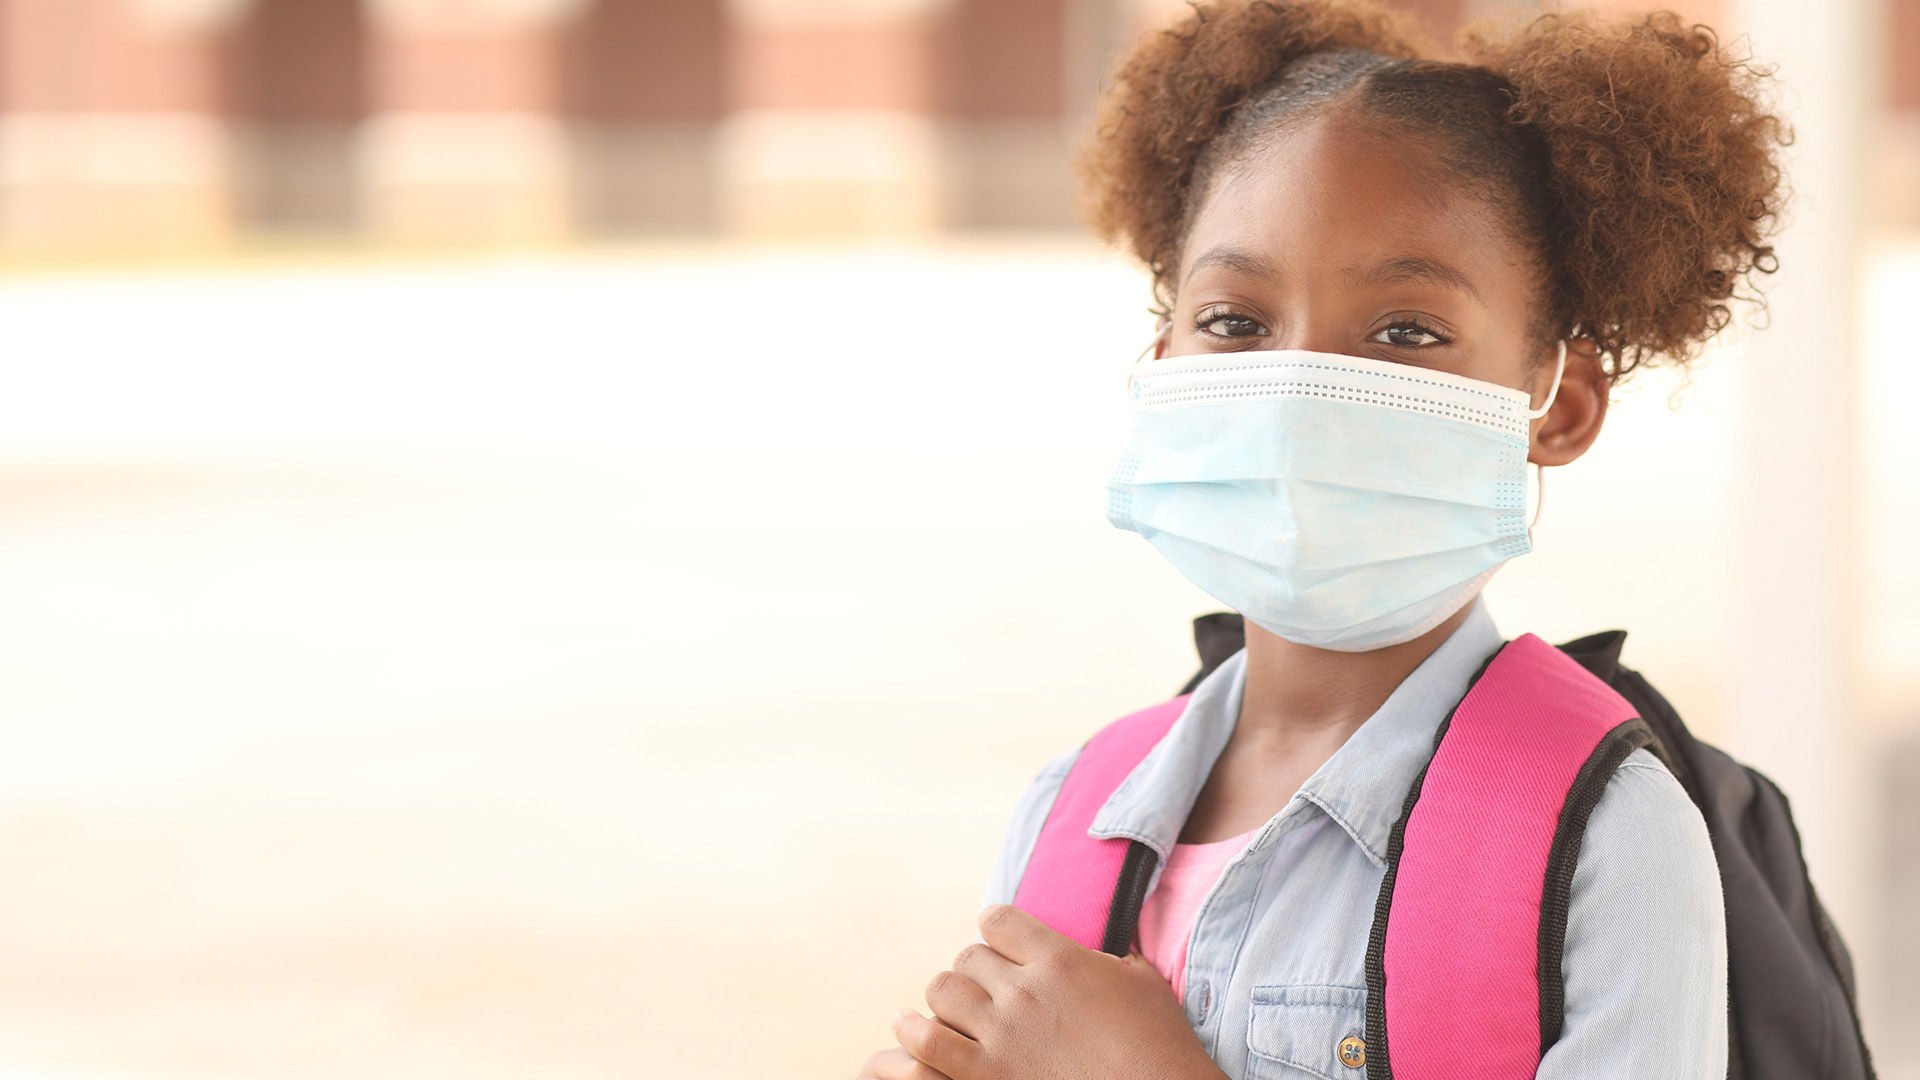 Following North Carolina's recent announcement about how the upcoming school year will look, we knew there would be questions. We talked to three Atrium Health experts about their response to the recent announcement and what their advice might be for parents who have questions about their children's safety.